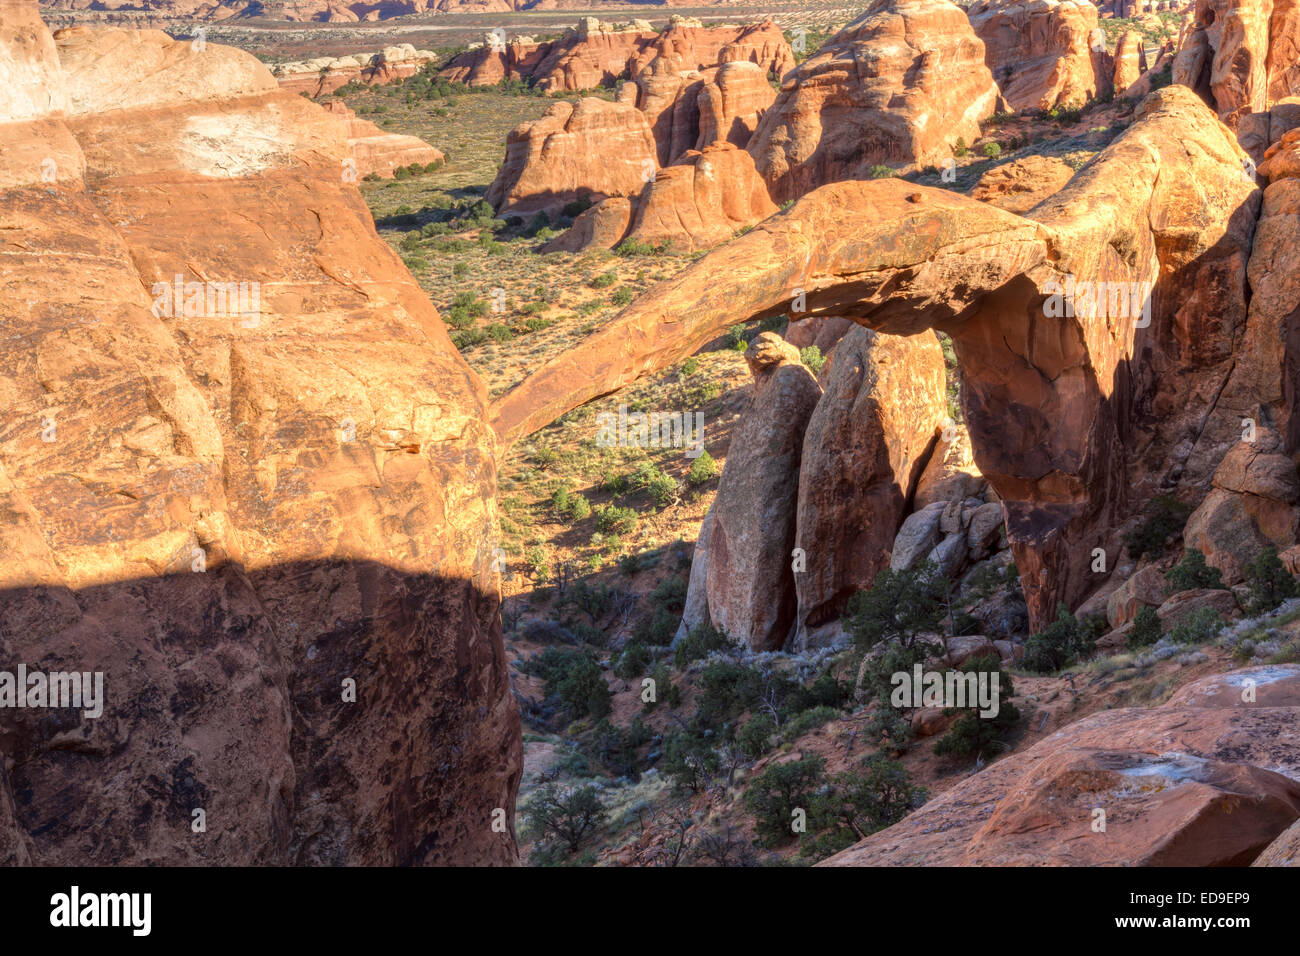 An unusual reverse view of iconic Landscape Arch in the Devil's Garden section of Arches National Park in Moab - Stock Image